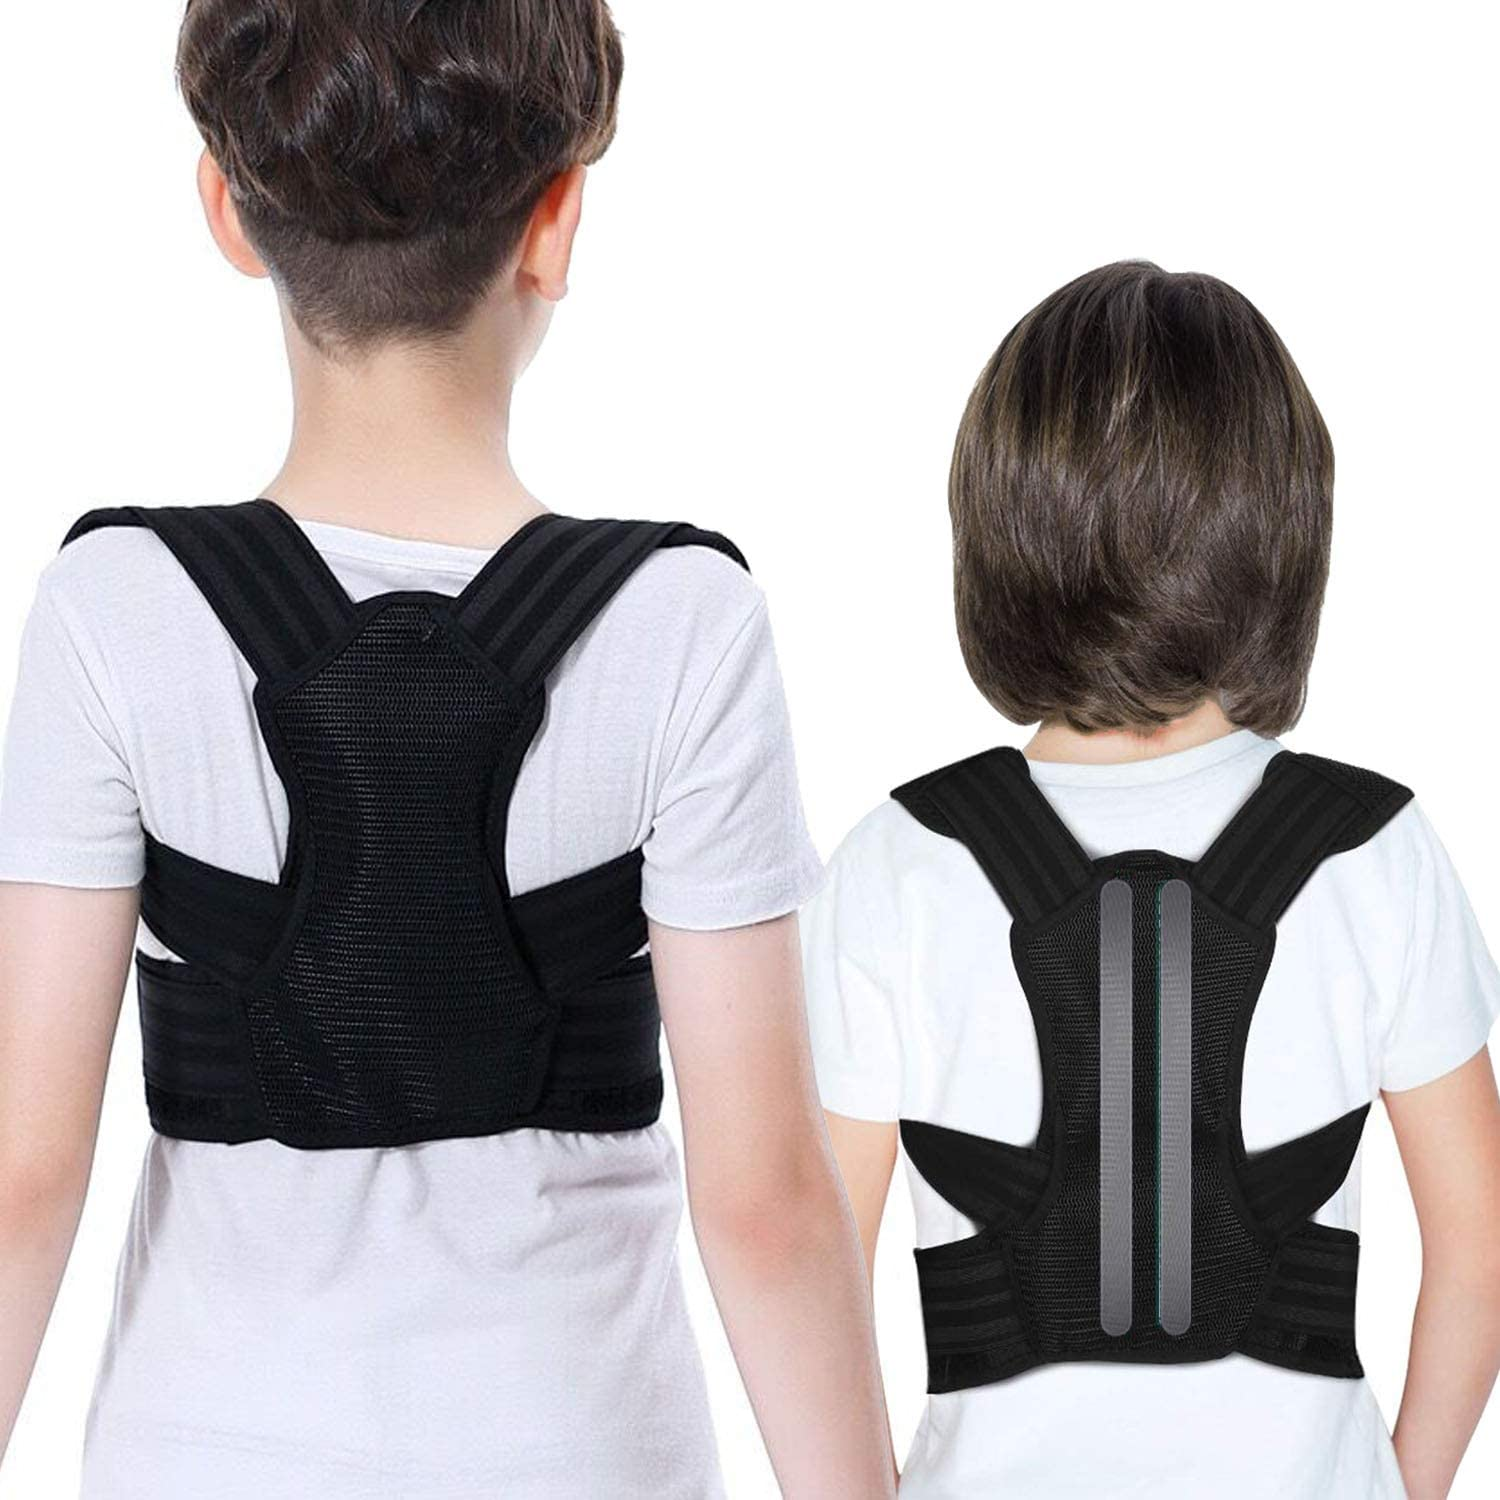 Professional Posture Corrector for Kids and Teens - Adjustable Comfortable Back Brace for Teenager Girls and Boys to Improves Slouch, Prevent Humpback, Relieve Back Pain, Best Posture Brace